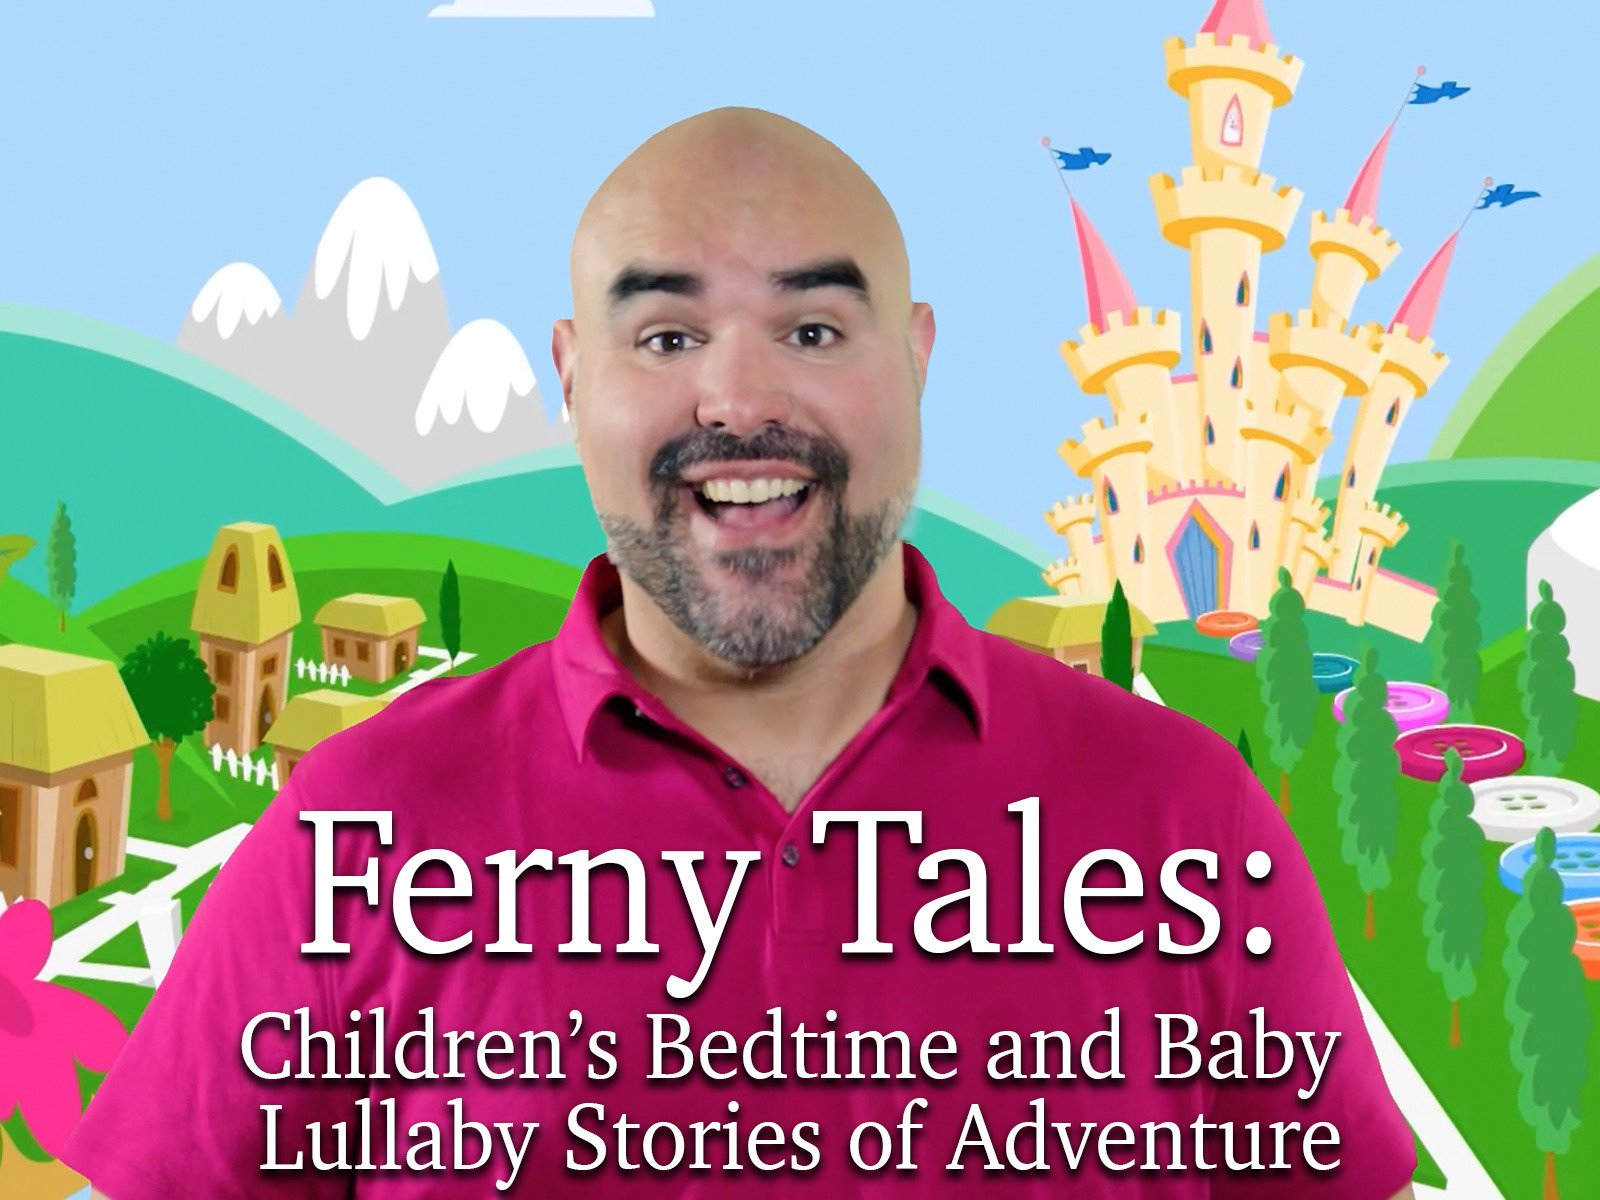 Ferny Tales: Children's Bedtime and Baby Lullaby Stories of Adventure - Season 1